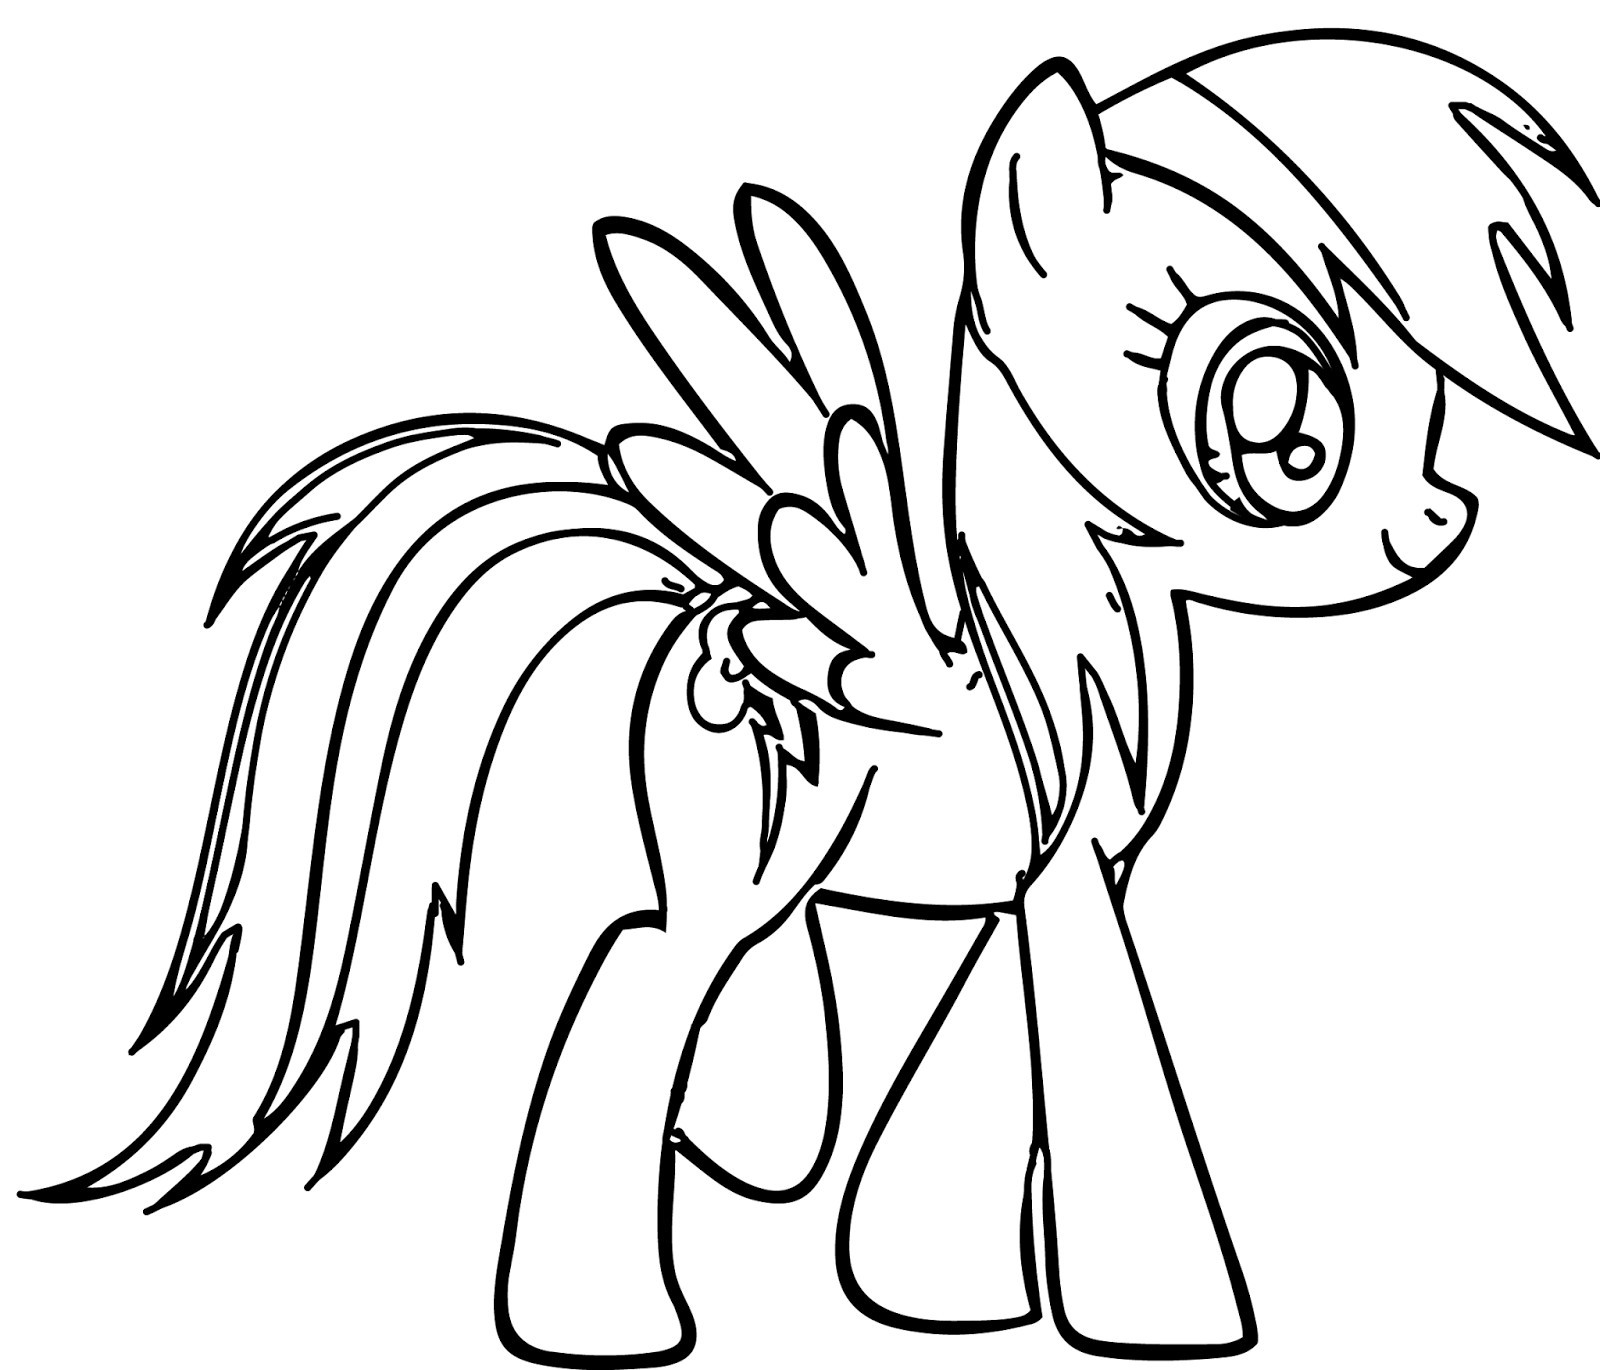 rainbow dash colouring pages print download colorful rainbow dash coloring pages to rainbow dash colouring pages